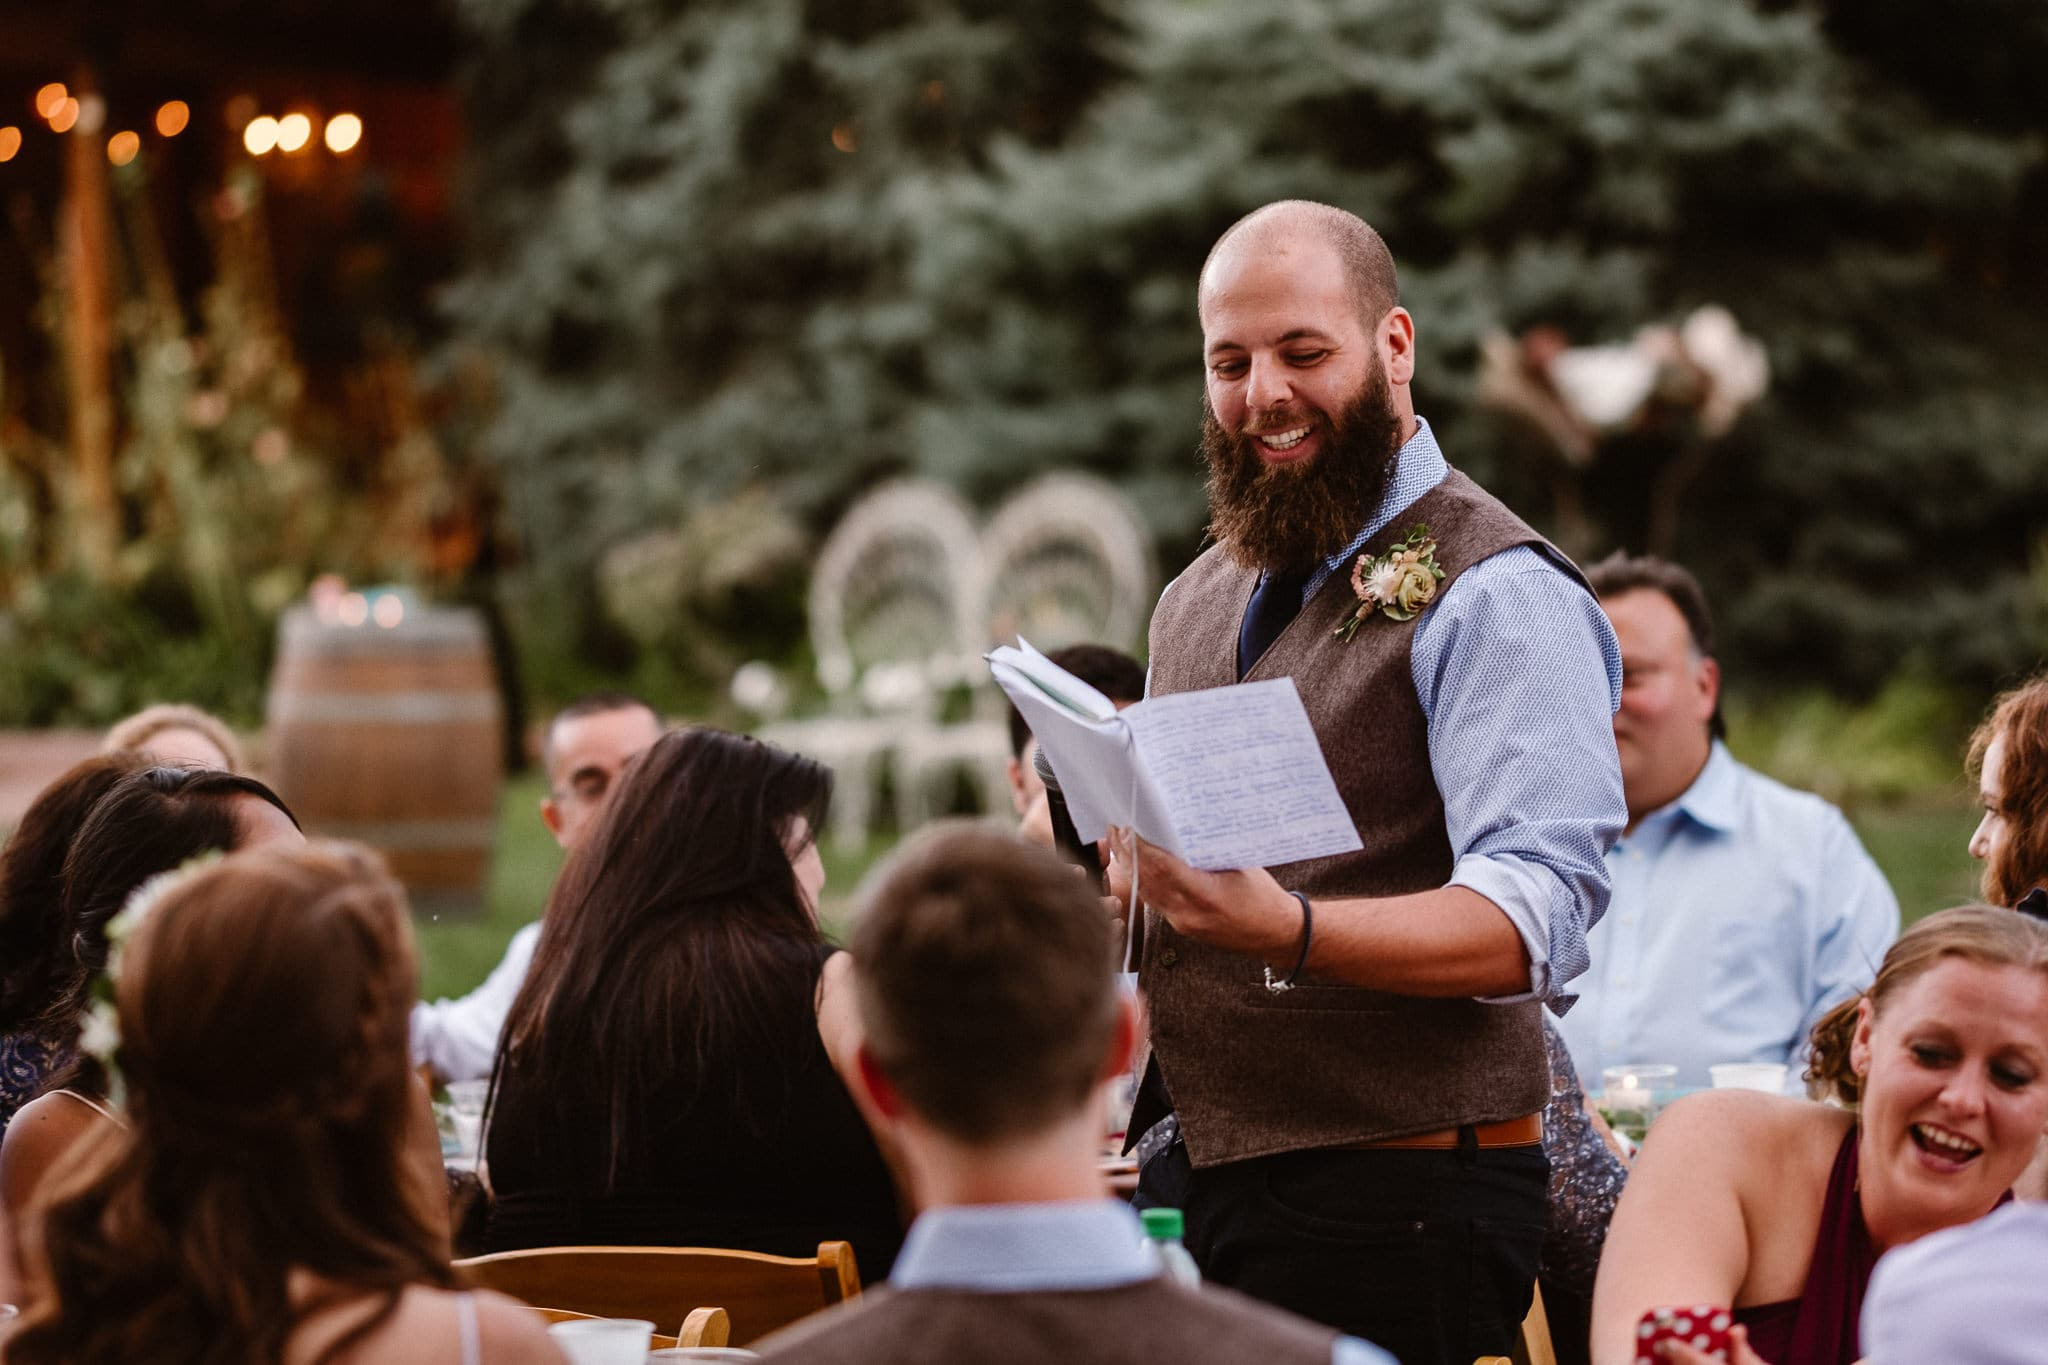 Lyons Farmette wedding photographer, Colorado intimate wedding photographer, wedding toasts, groomsman toast